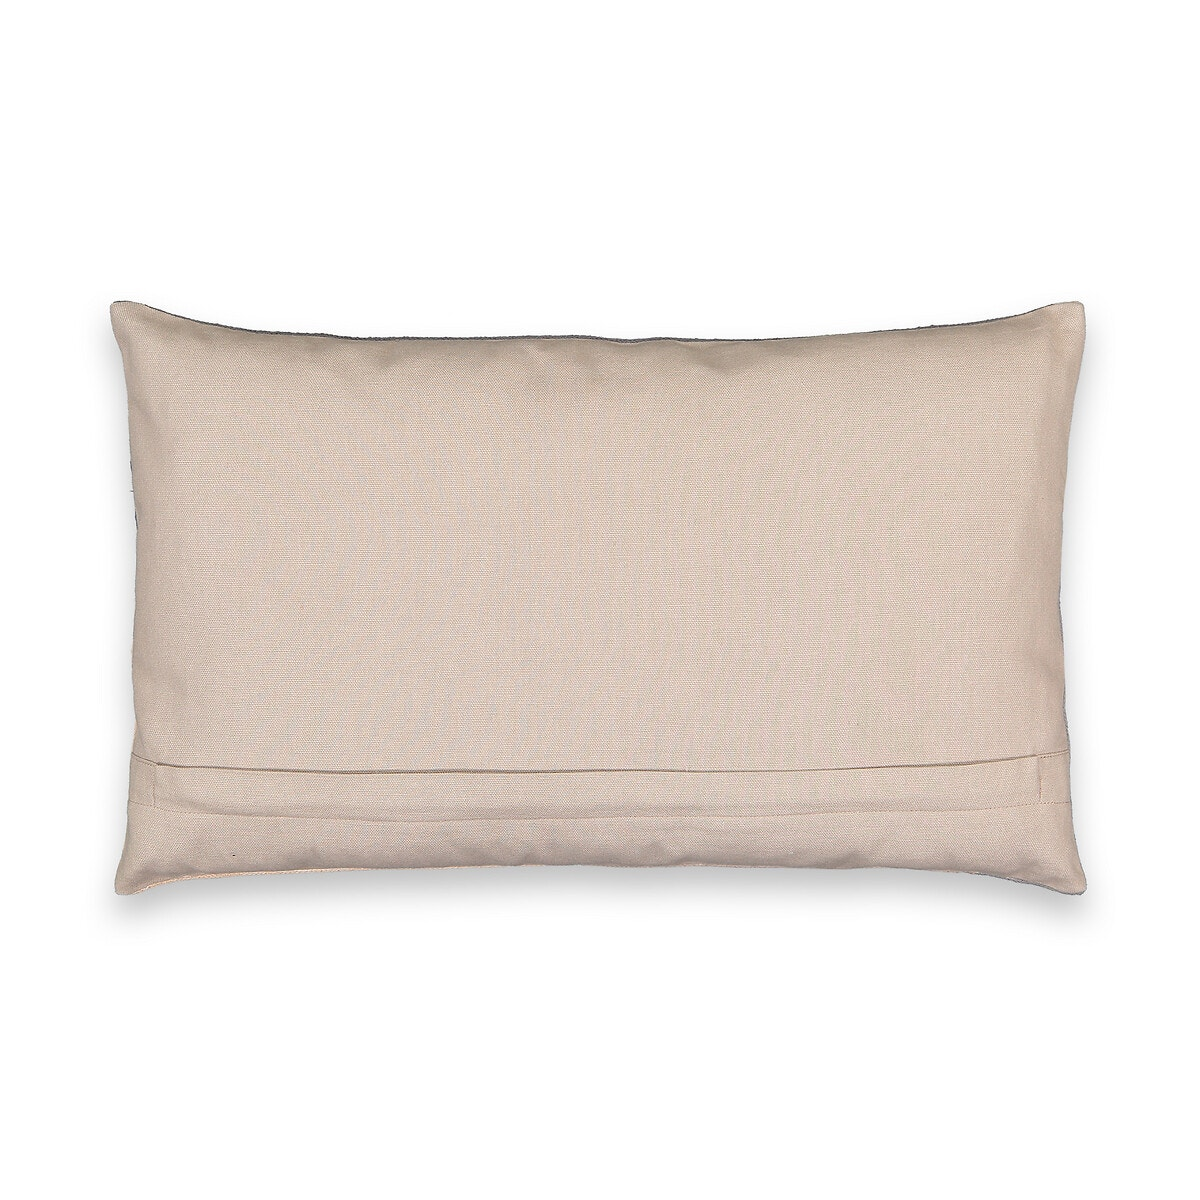 Galet Embroidered Cushion Cover